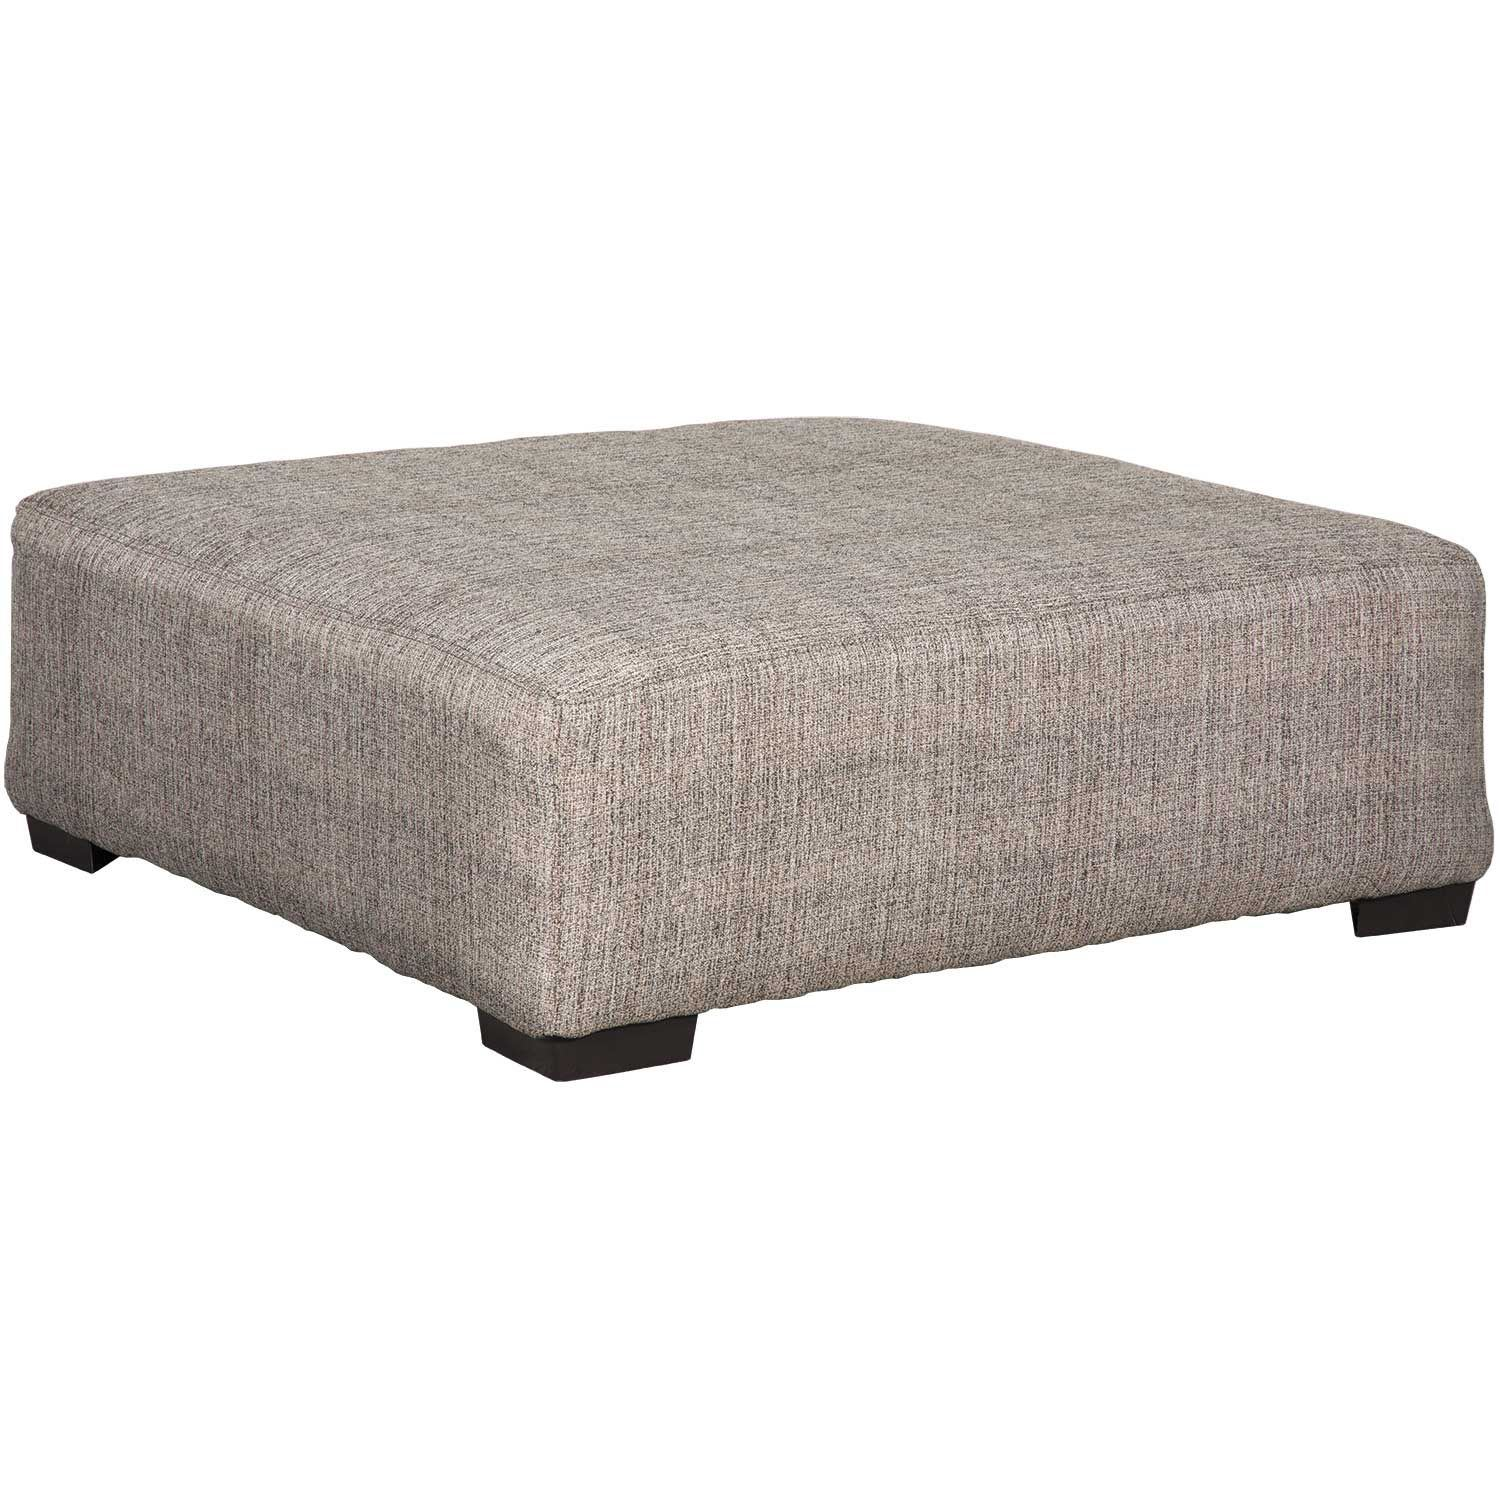 Picture of Ava Pepper Cocktail Ottoman